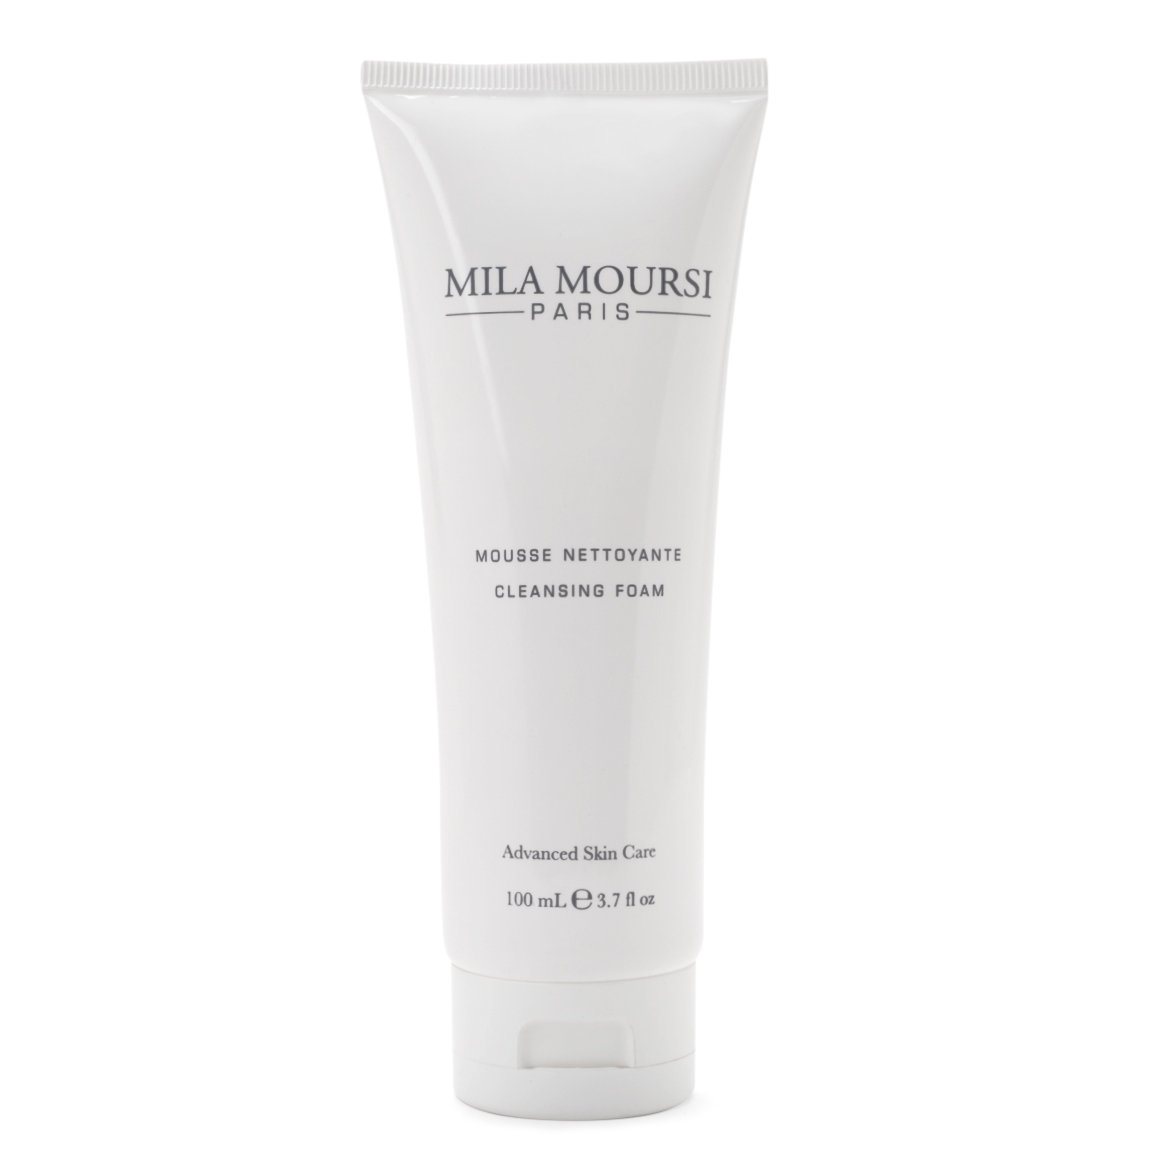 Mila Moursi Cleansing Foam 100 ml product swatch.